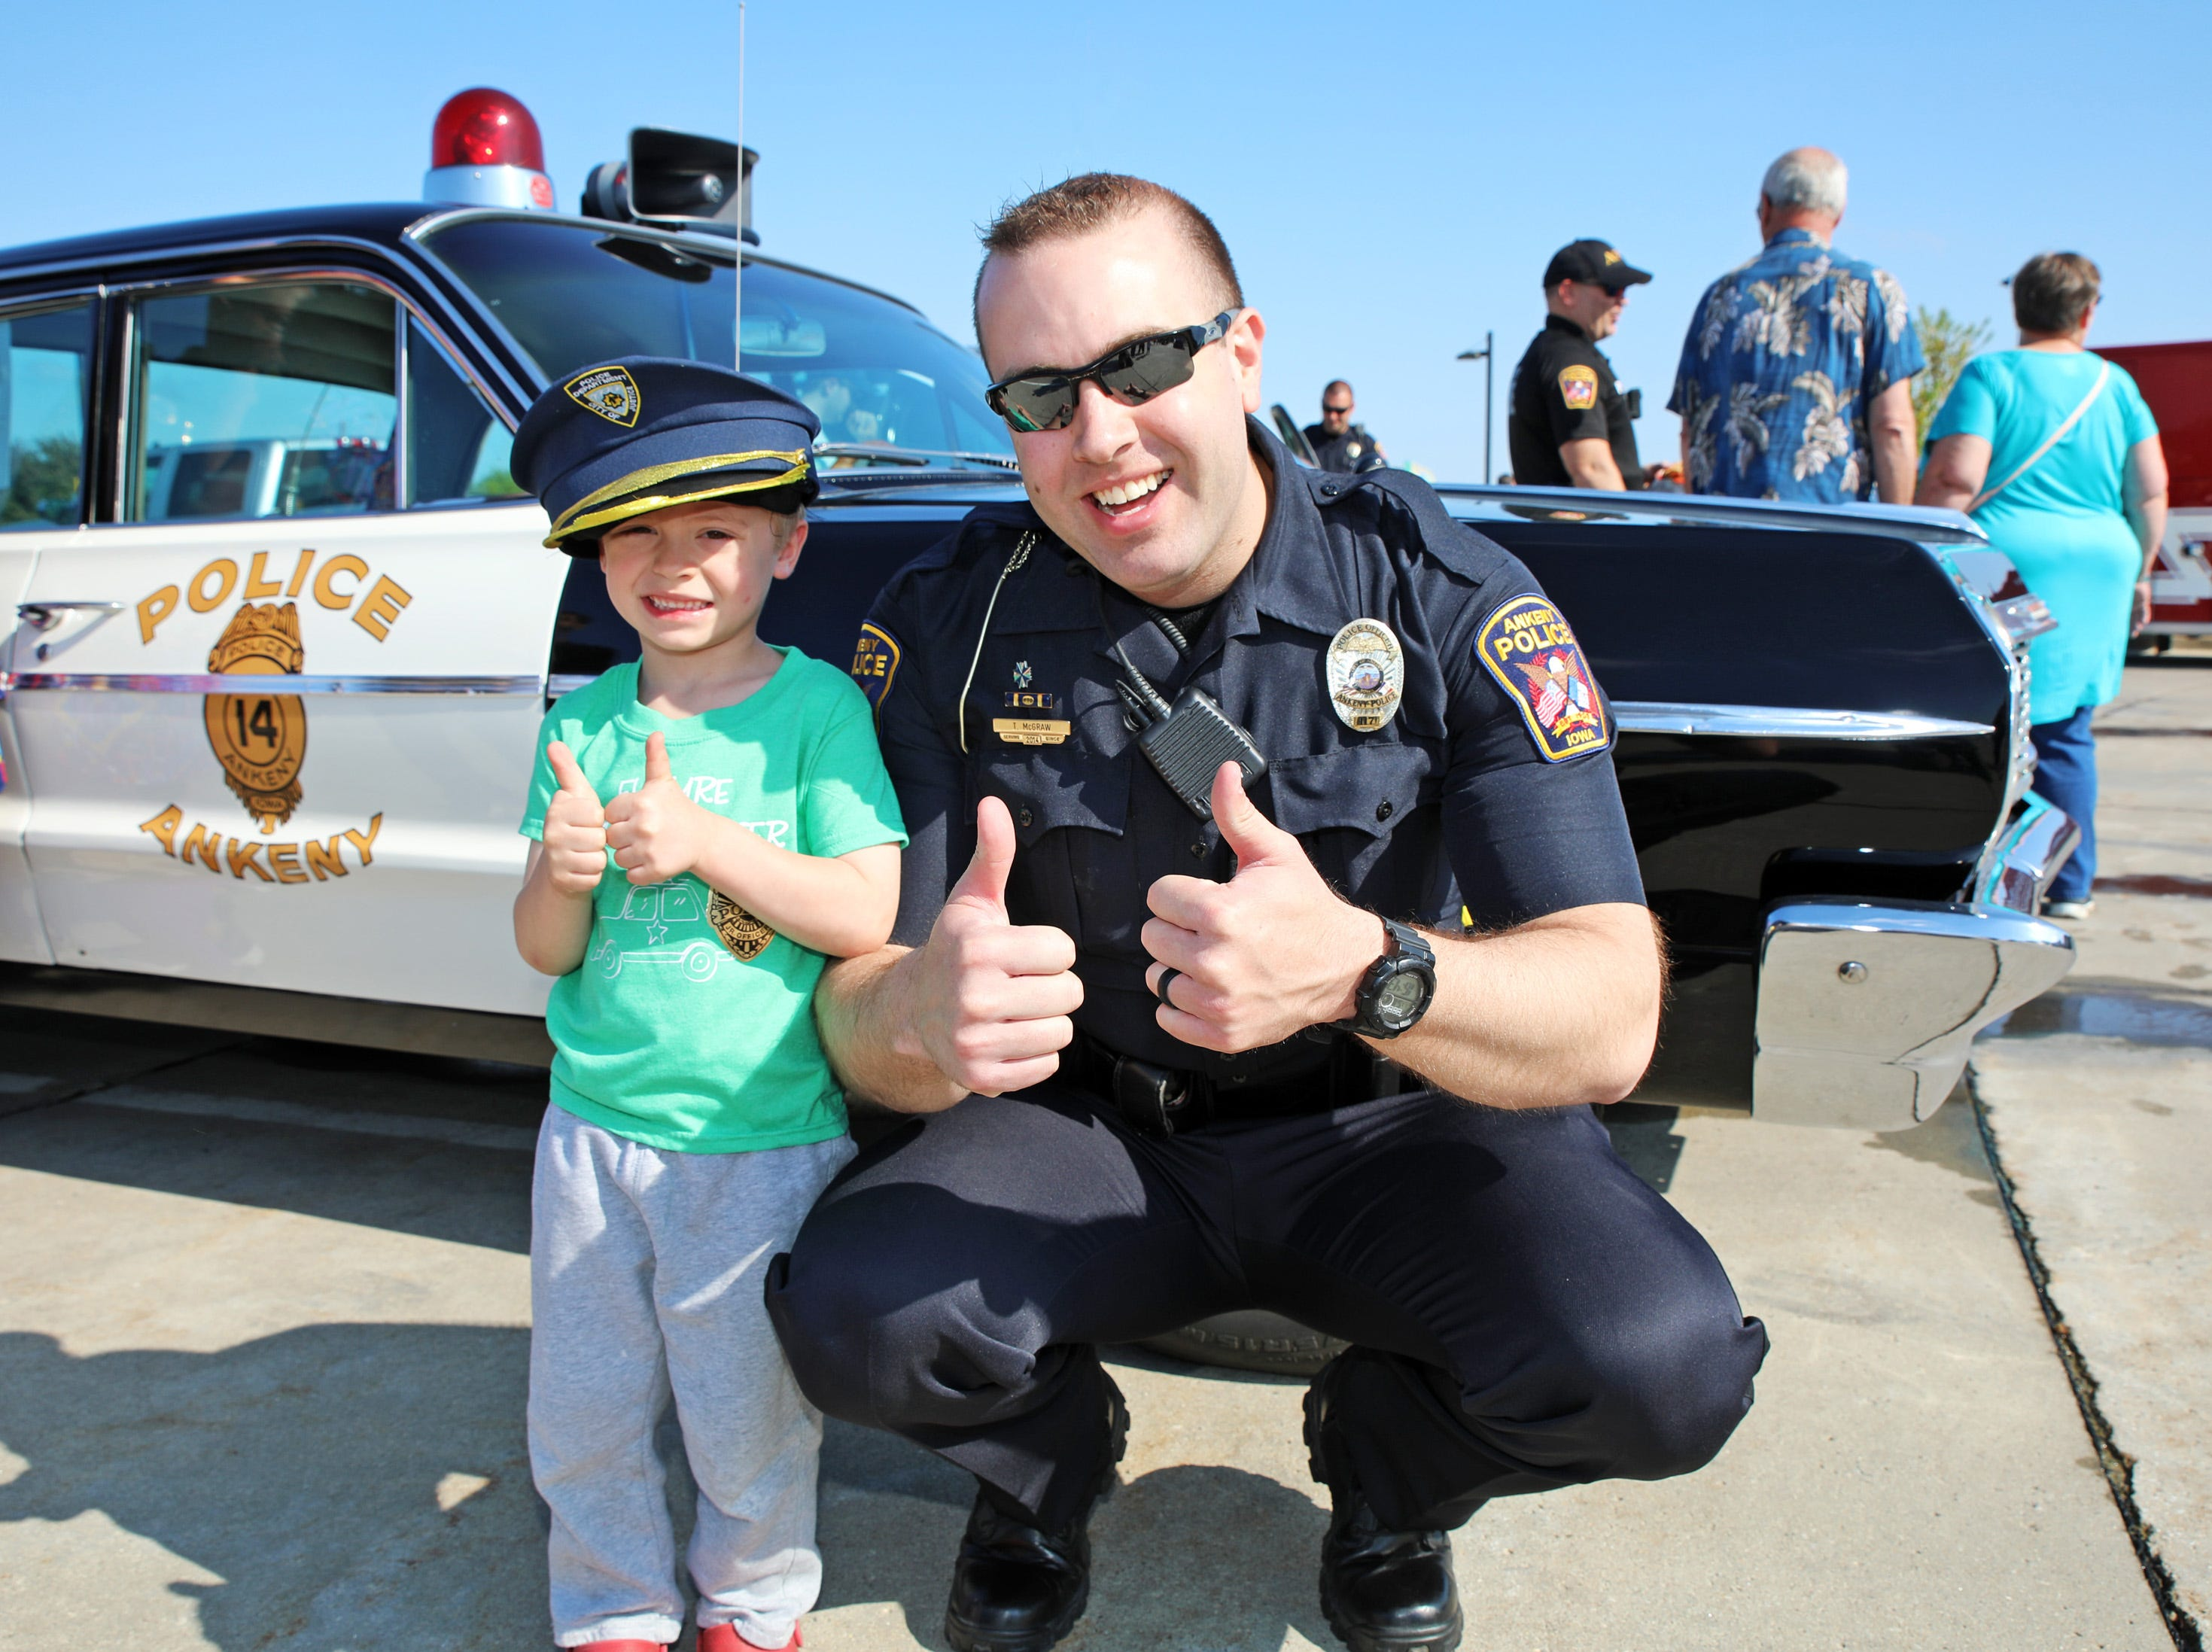 Officer Tyler McGraw of the Ankeny Police Dept. and Ben Miller, 4, of Ankeny enjoy the Ankeny Police Week Community Picnic on Tuesday, May 14, 2019 at the Ankeny Police Headquarters located at 411 SW Ordnance Road. The event featured a tour of the police station, magician Jonathon May, free Chick Fil-A sandwiches for the first 1,000 guests, free Kona Ice, temporary tattoos, and a great opportunity to meet the officers who protect and serve the city of Ankeny.